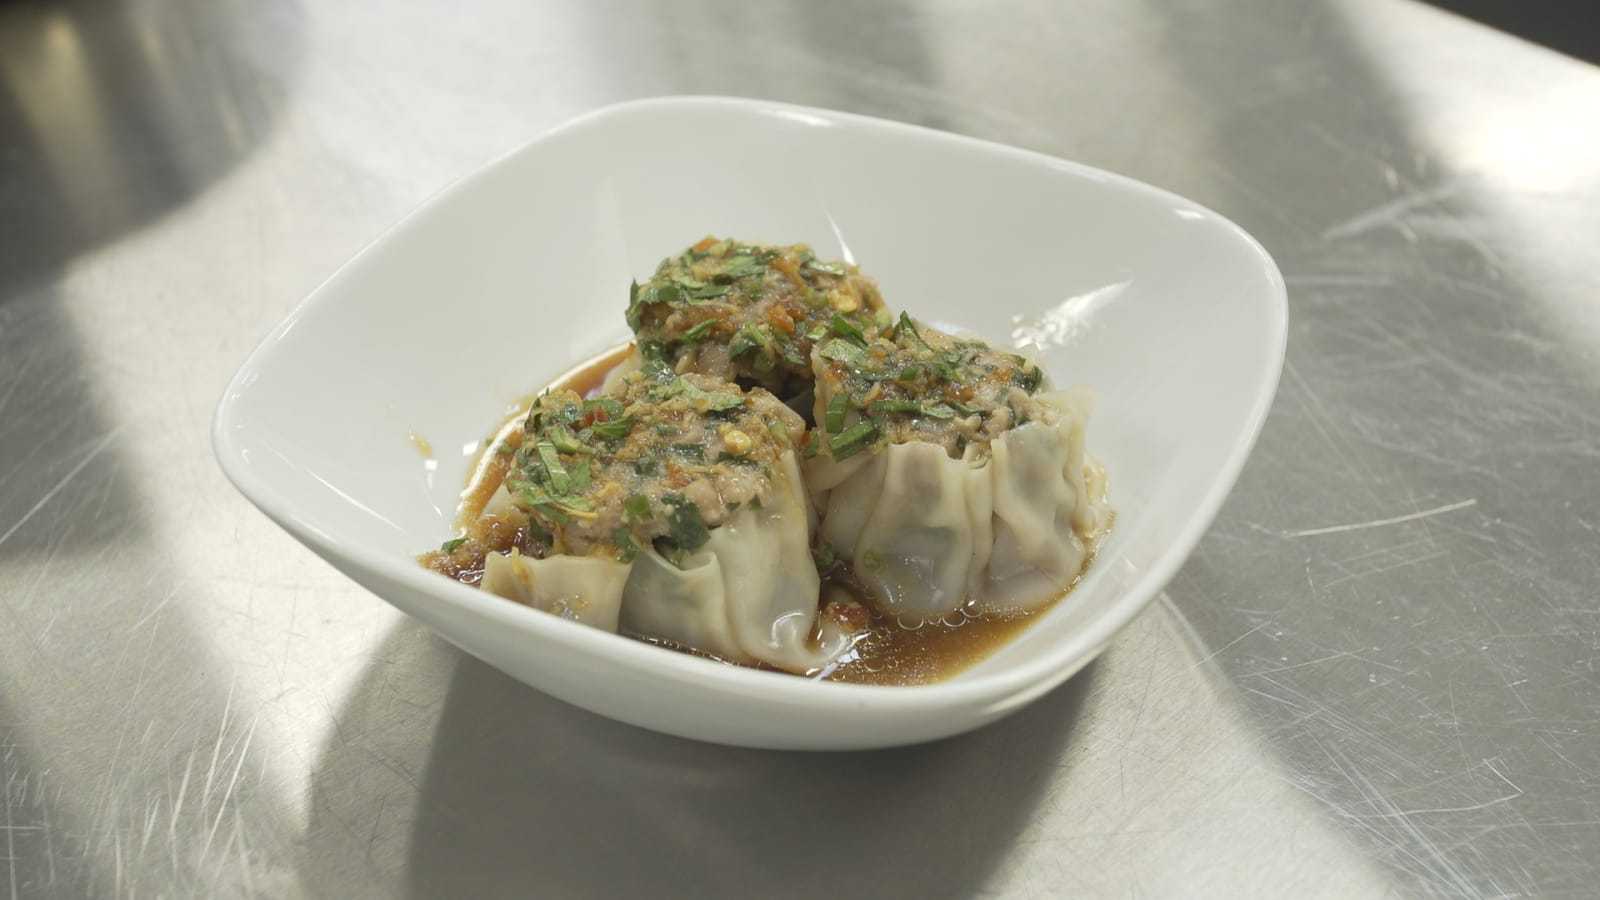 Impossible siu mai